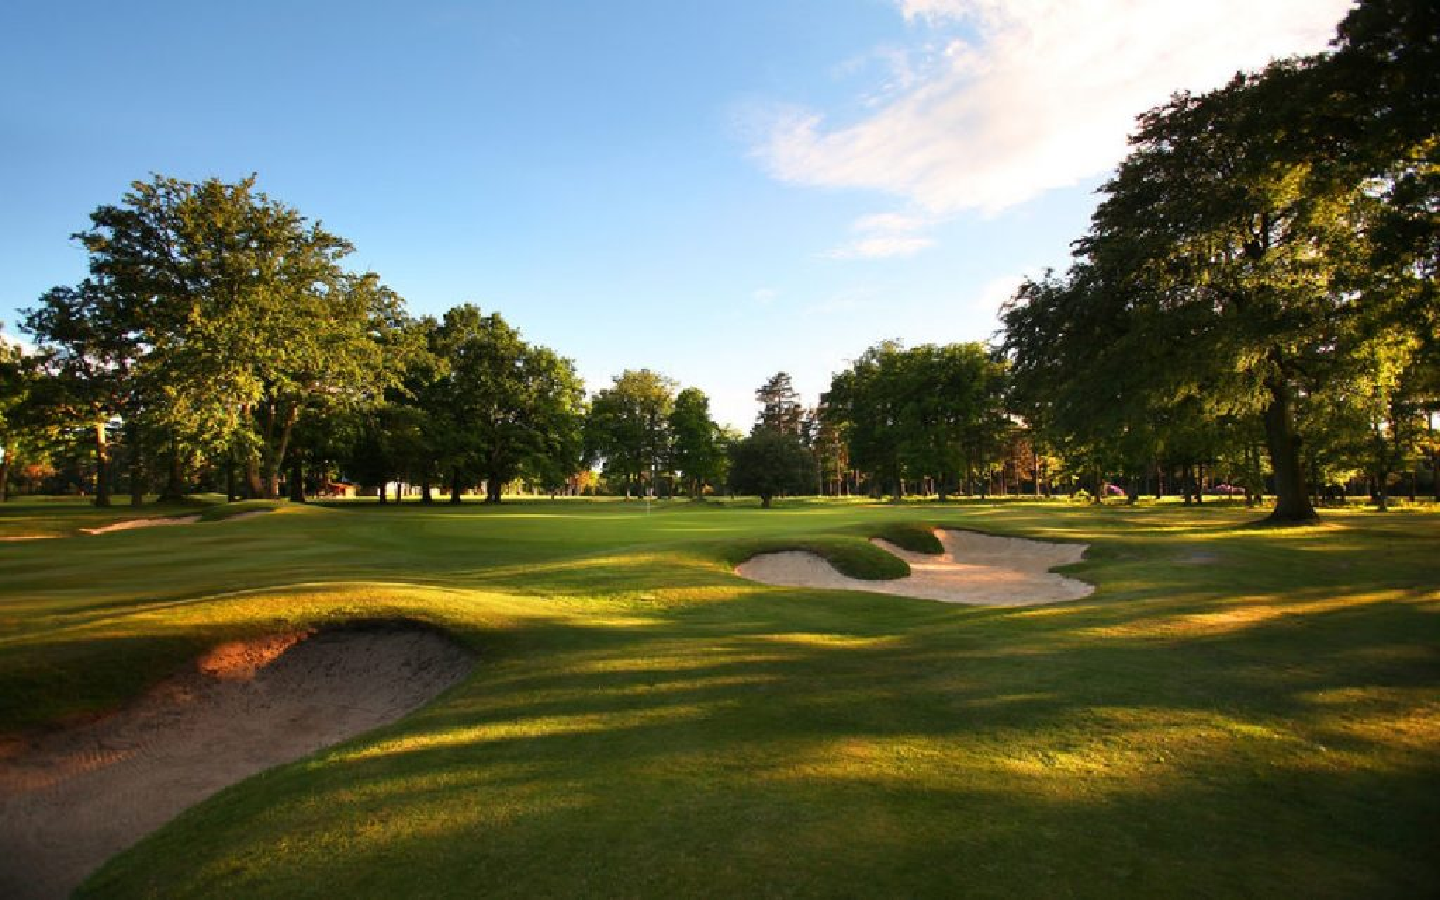 West Hill Golf Club - Commonwealth Cup Venue